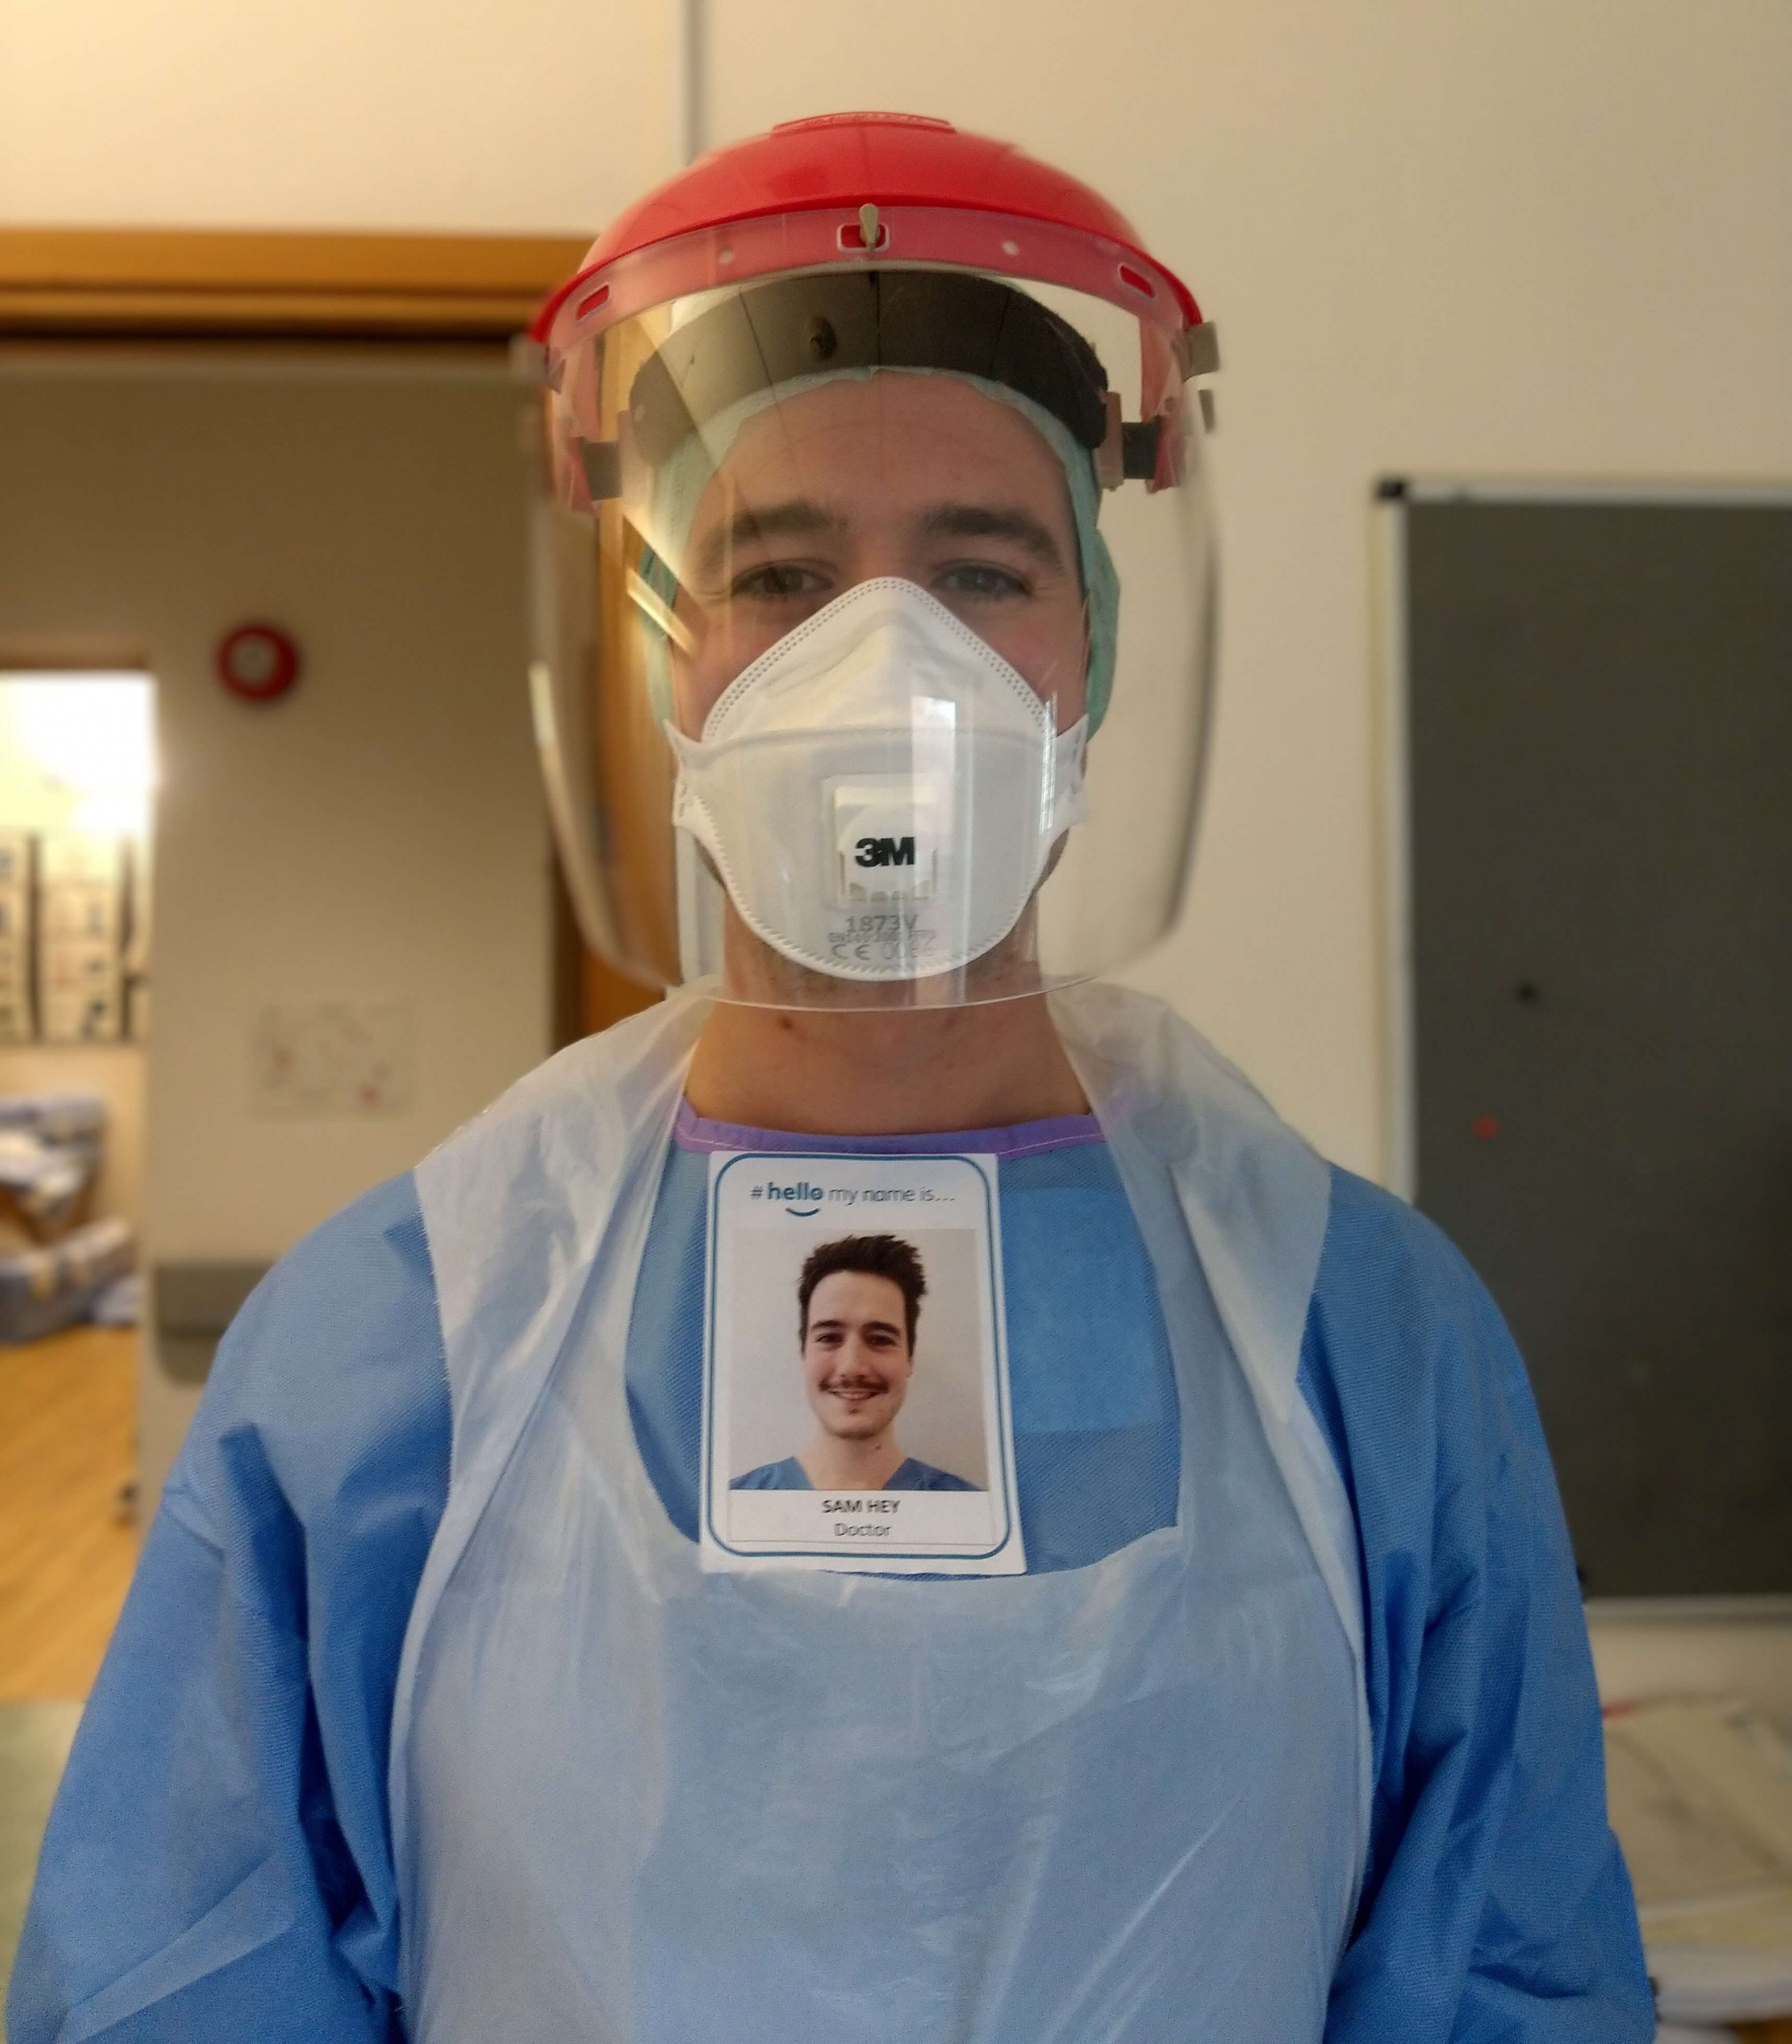 Image shows Dr Samuel Hey in Personal Protective Equipment (PPE) during COVID-19